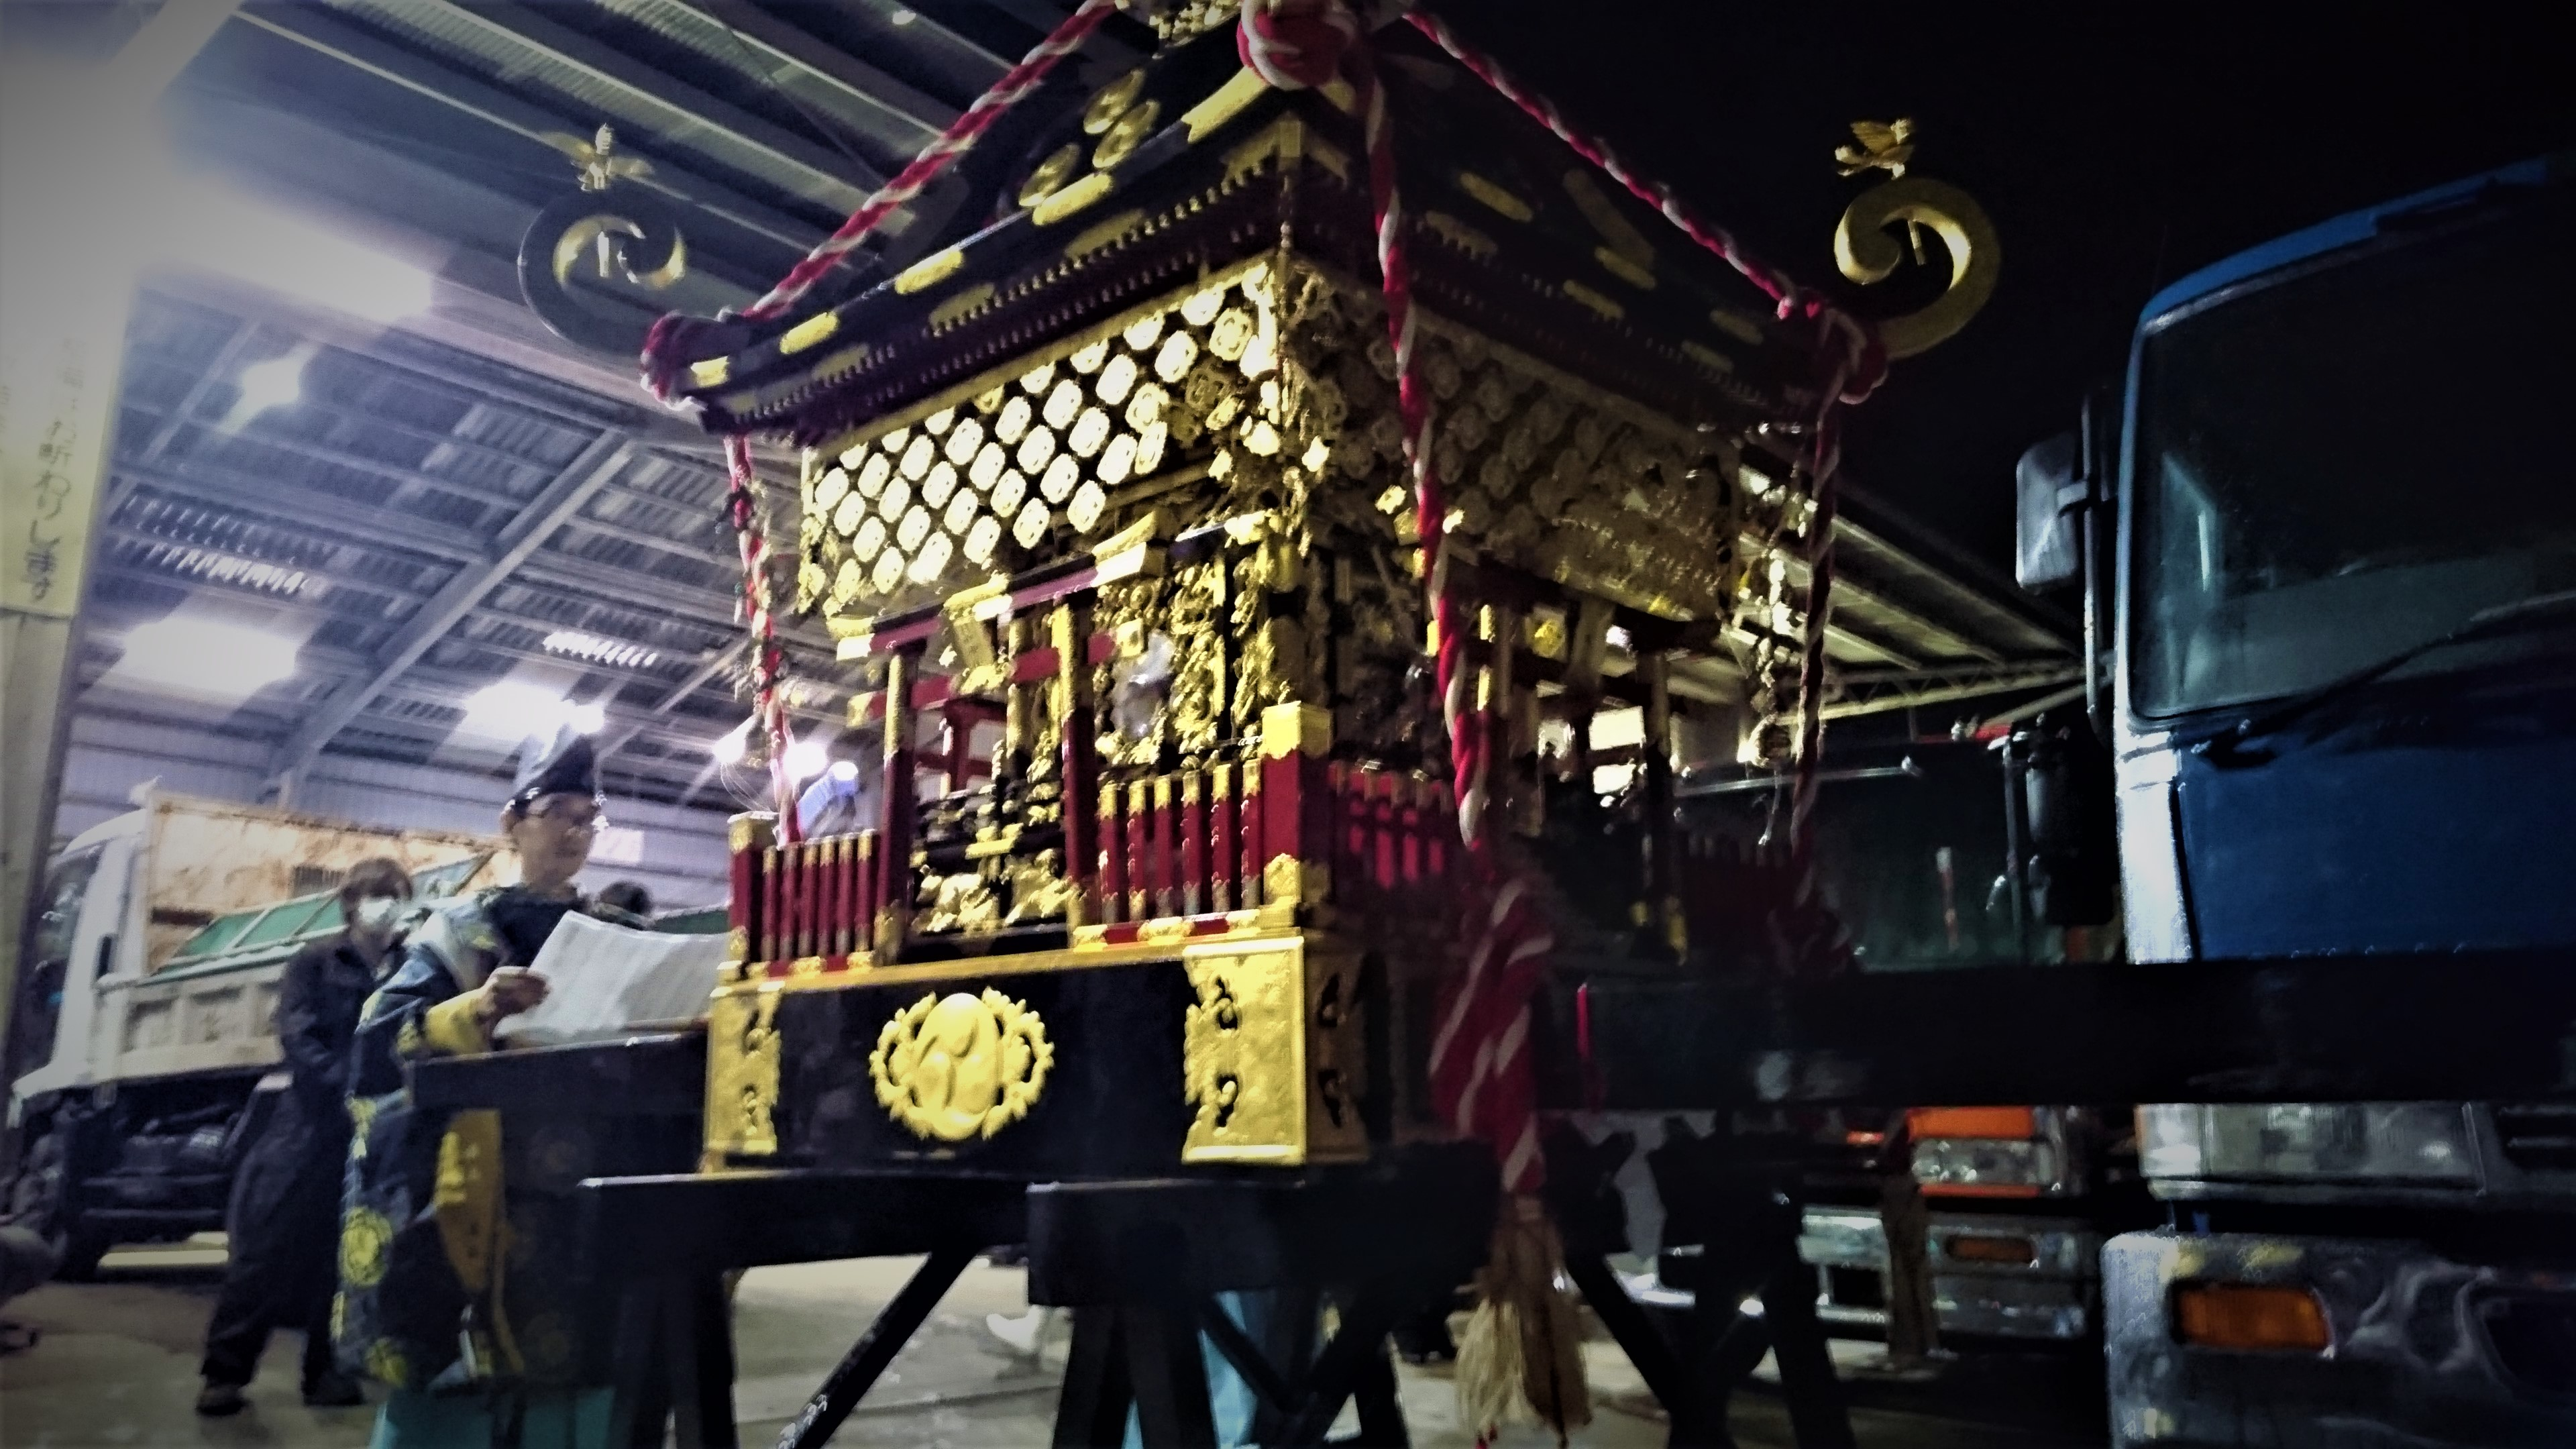 Picture of the shrine being carried by the people at night